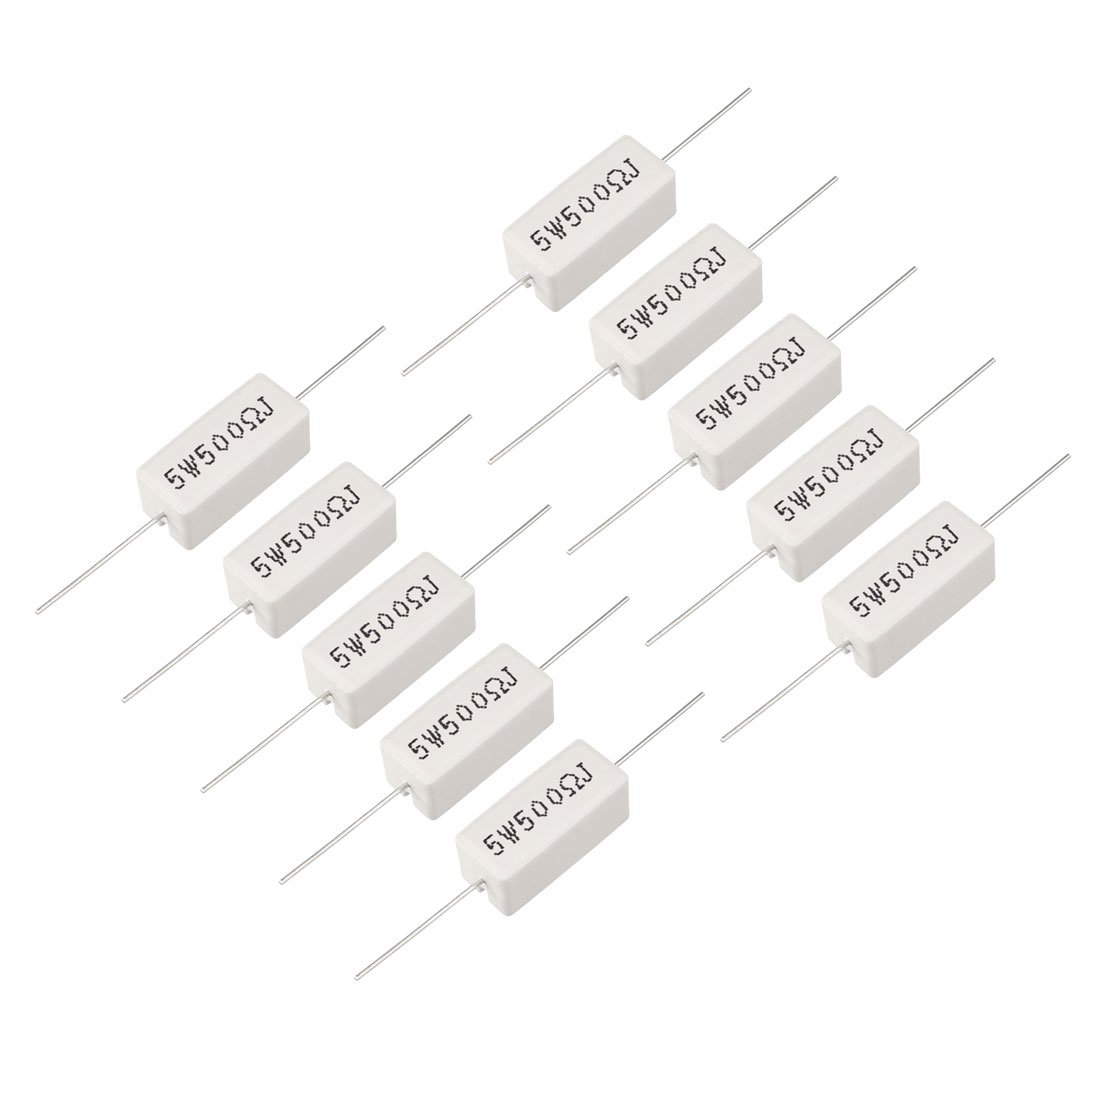 uxcell 20W 4 Ohm Power Resistor Ceramic Cement Resistor Axial Lead White 5pcs a18040400ux0063